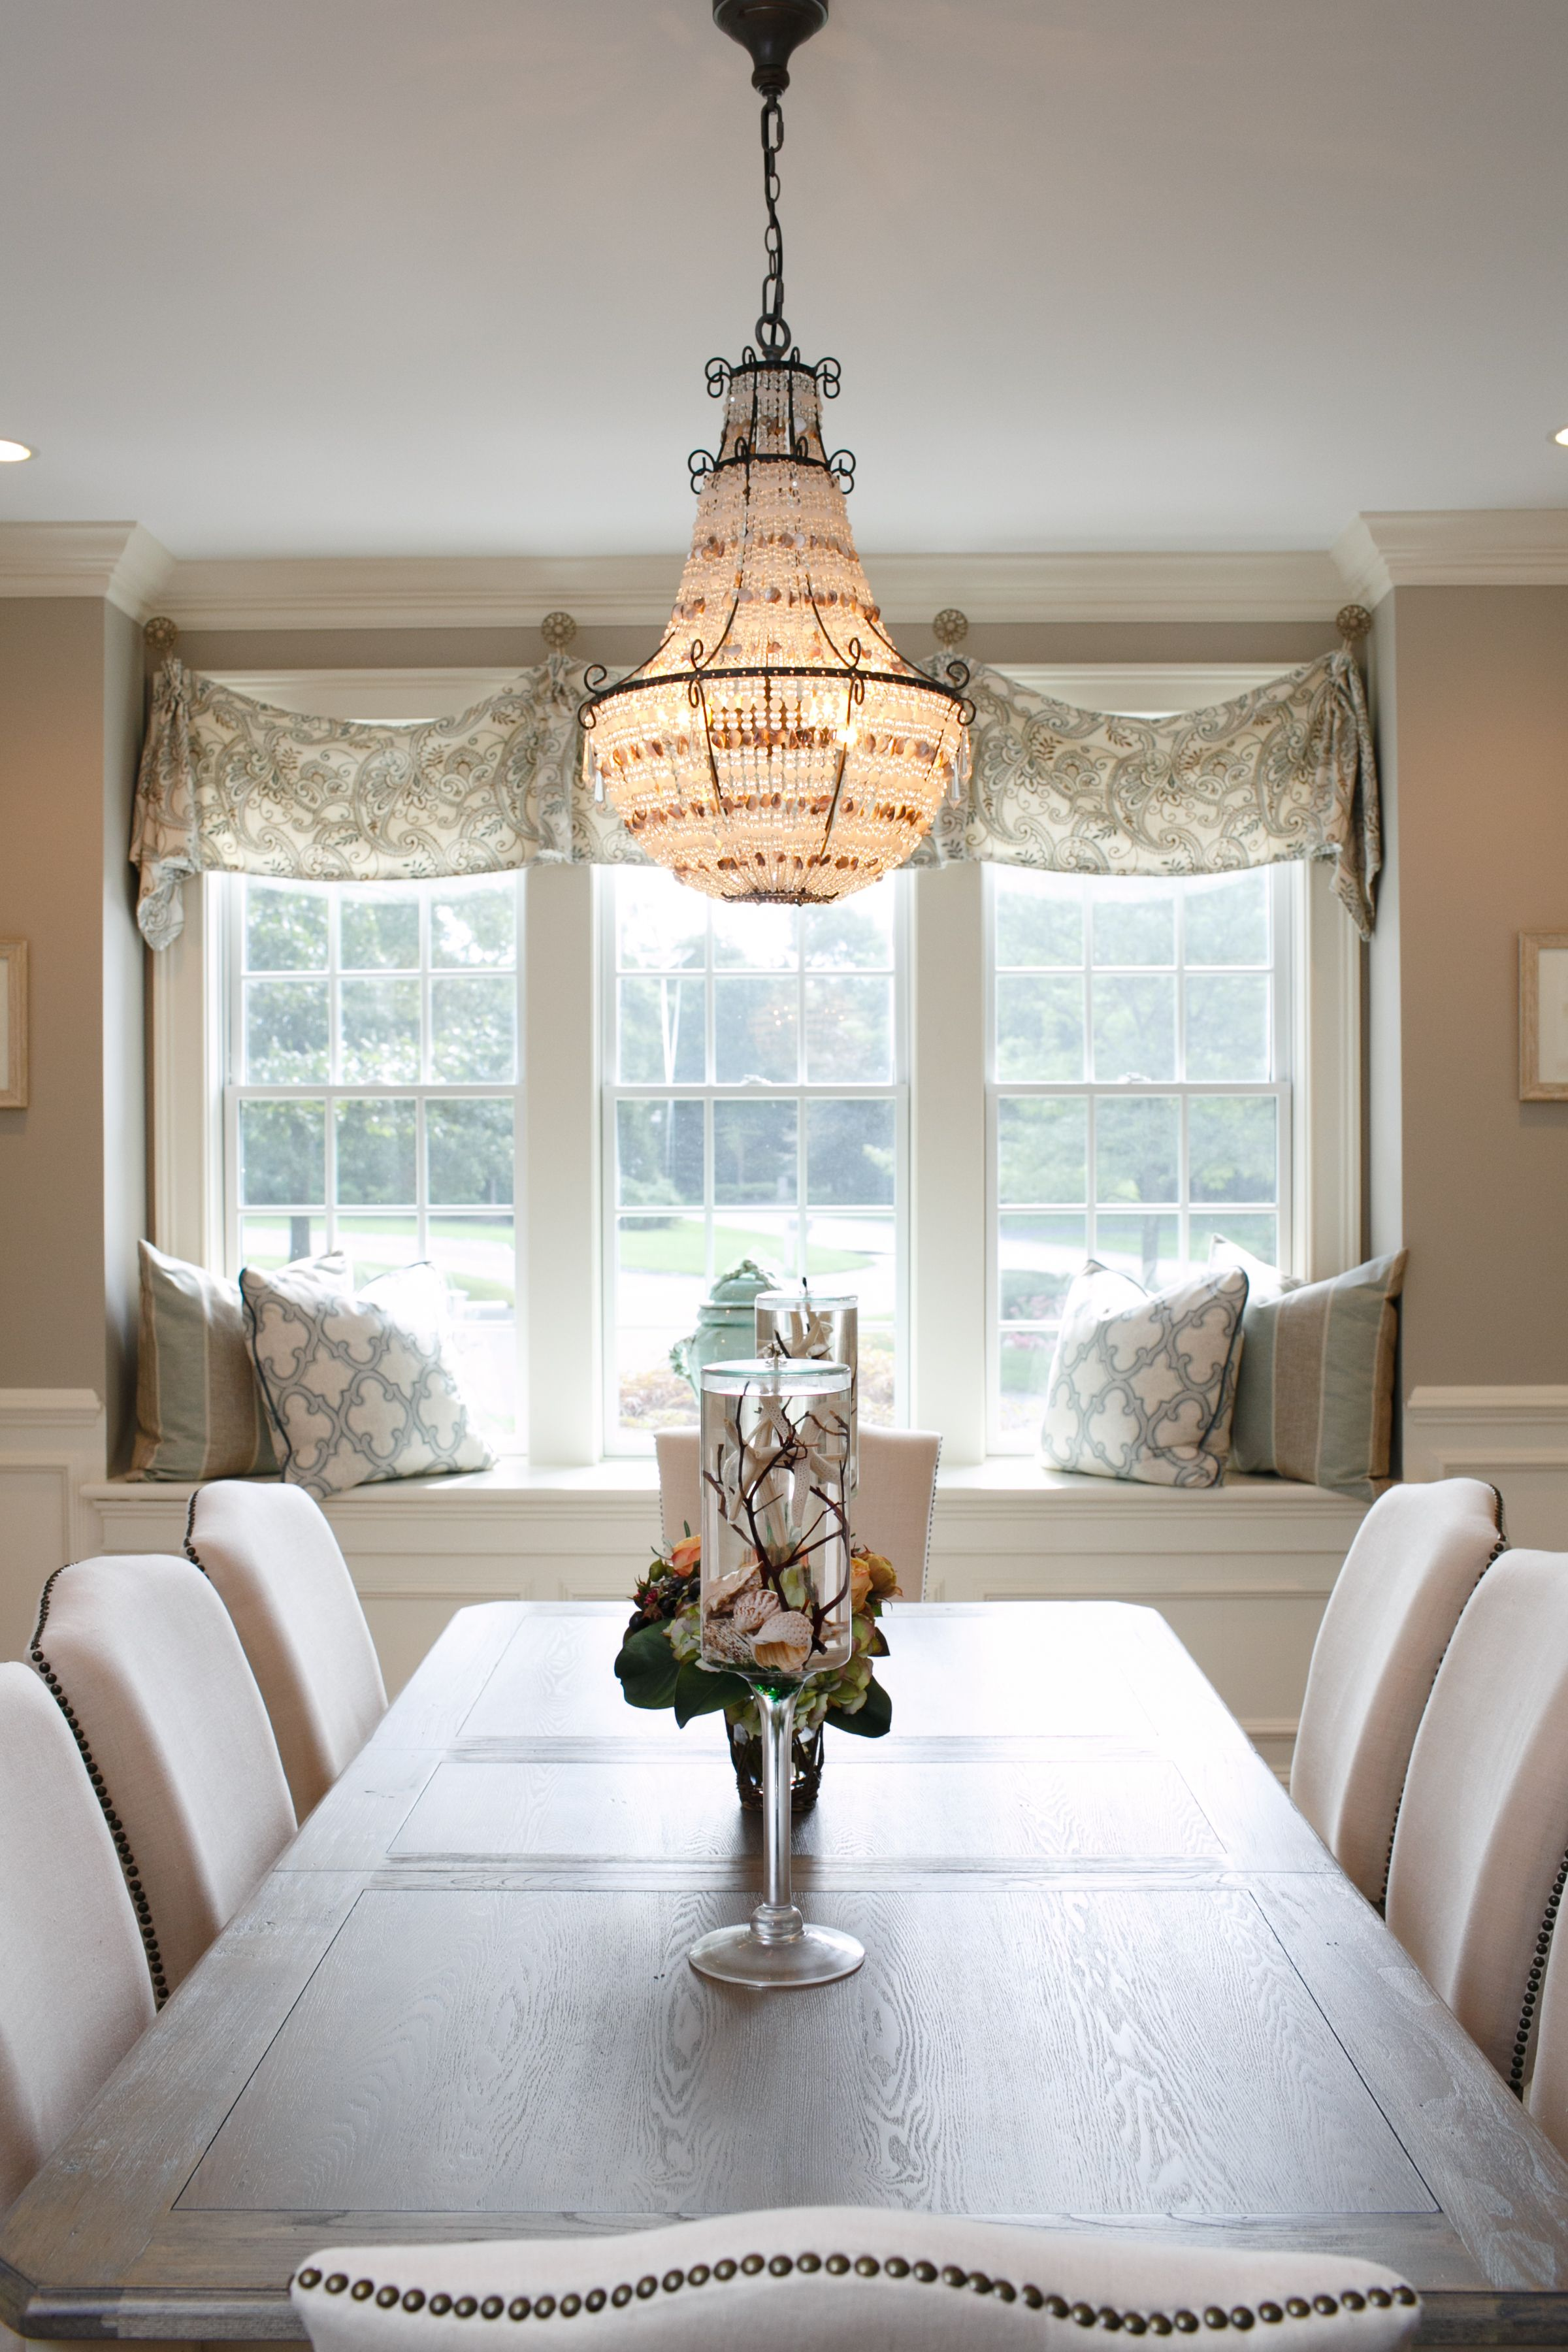 Traditional Interior Design By Ownby: That Chandelier! Mashpee Home, Cape Cod Interior Design By Casabella Home Furnishings